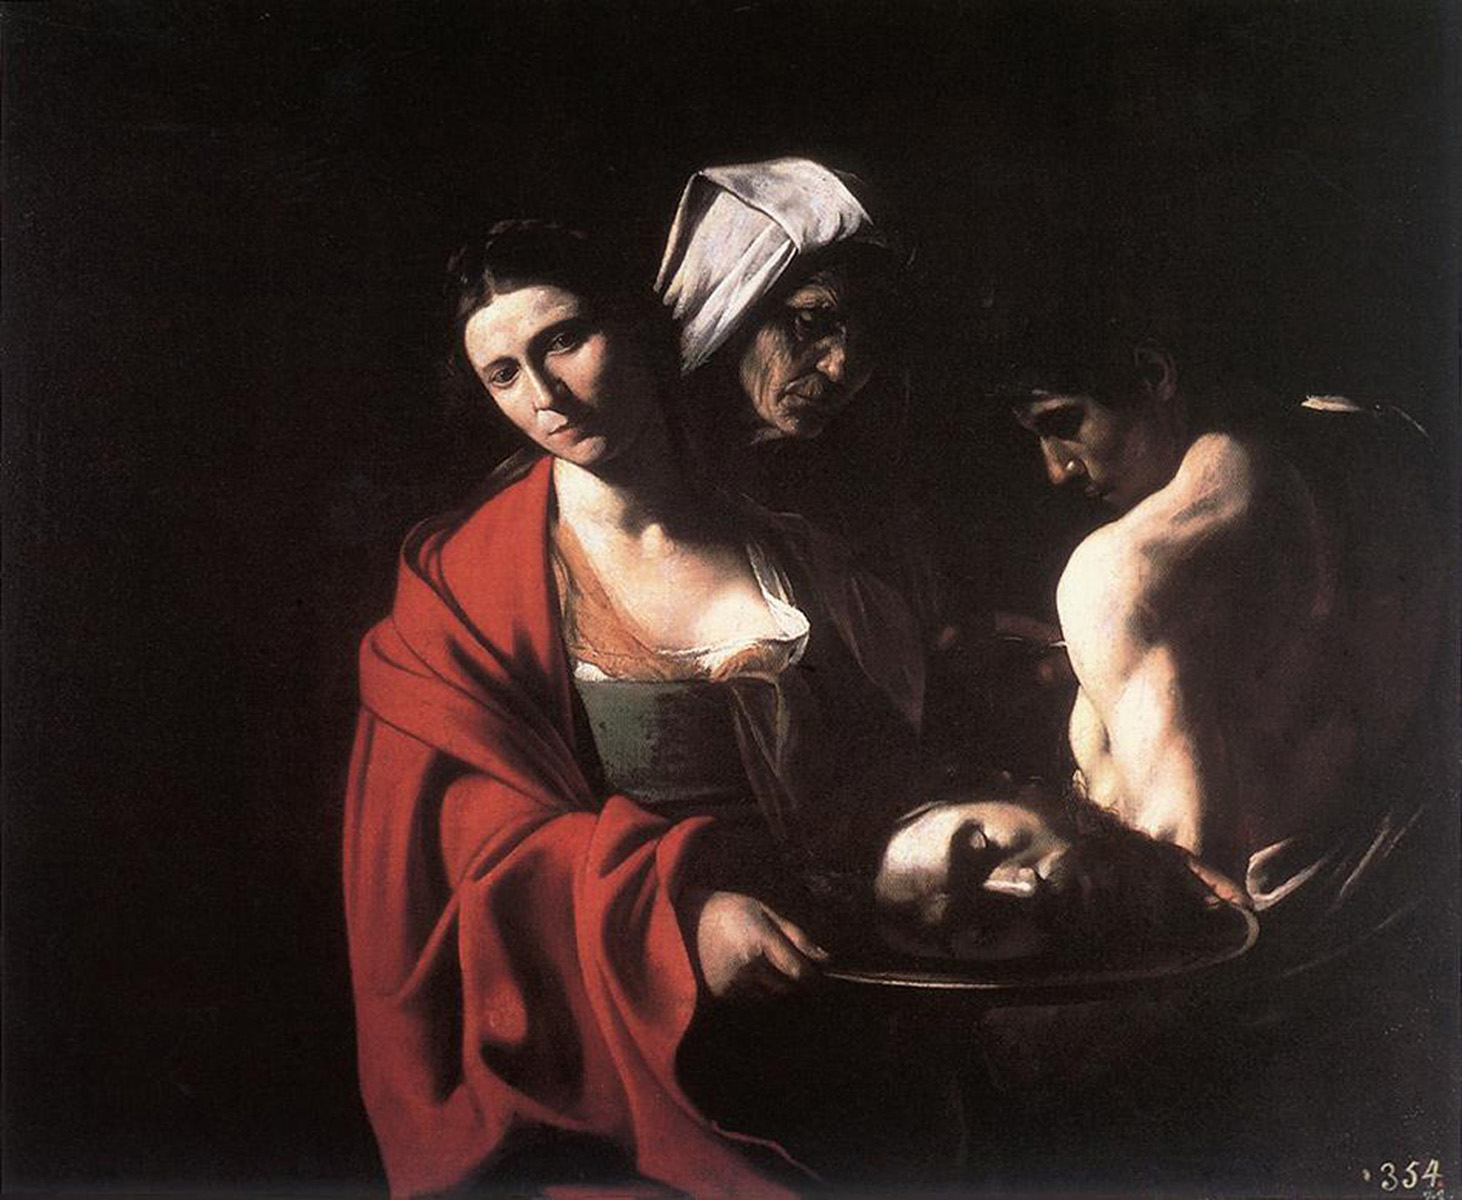 caravaggio and his life Caravaggio rome private tour: enjoy an extraordinary experience of art, exploring the paintings of caravaggio discover his powerful art & life in baroque rome.